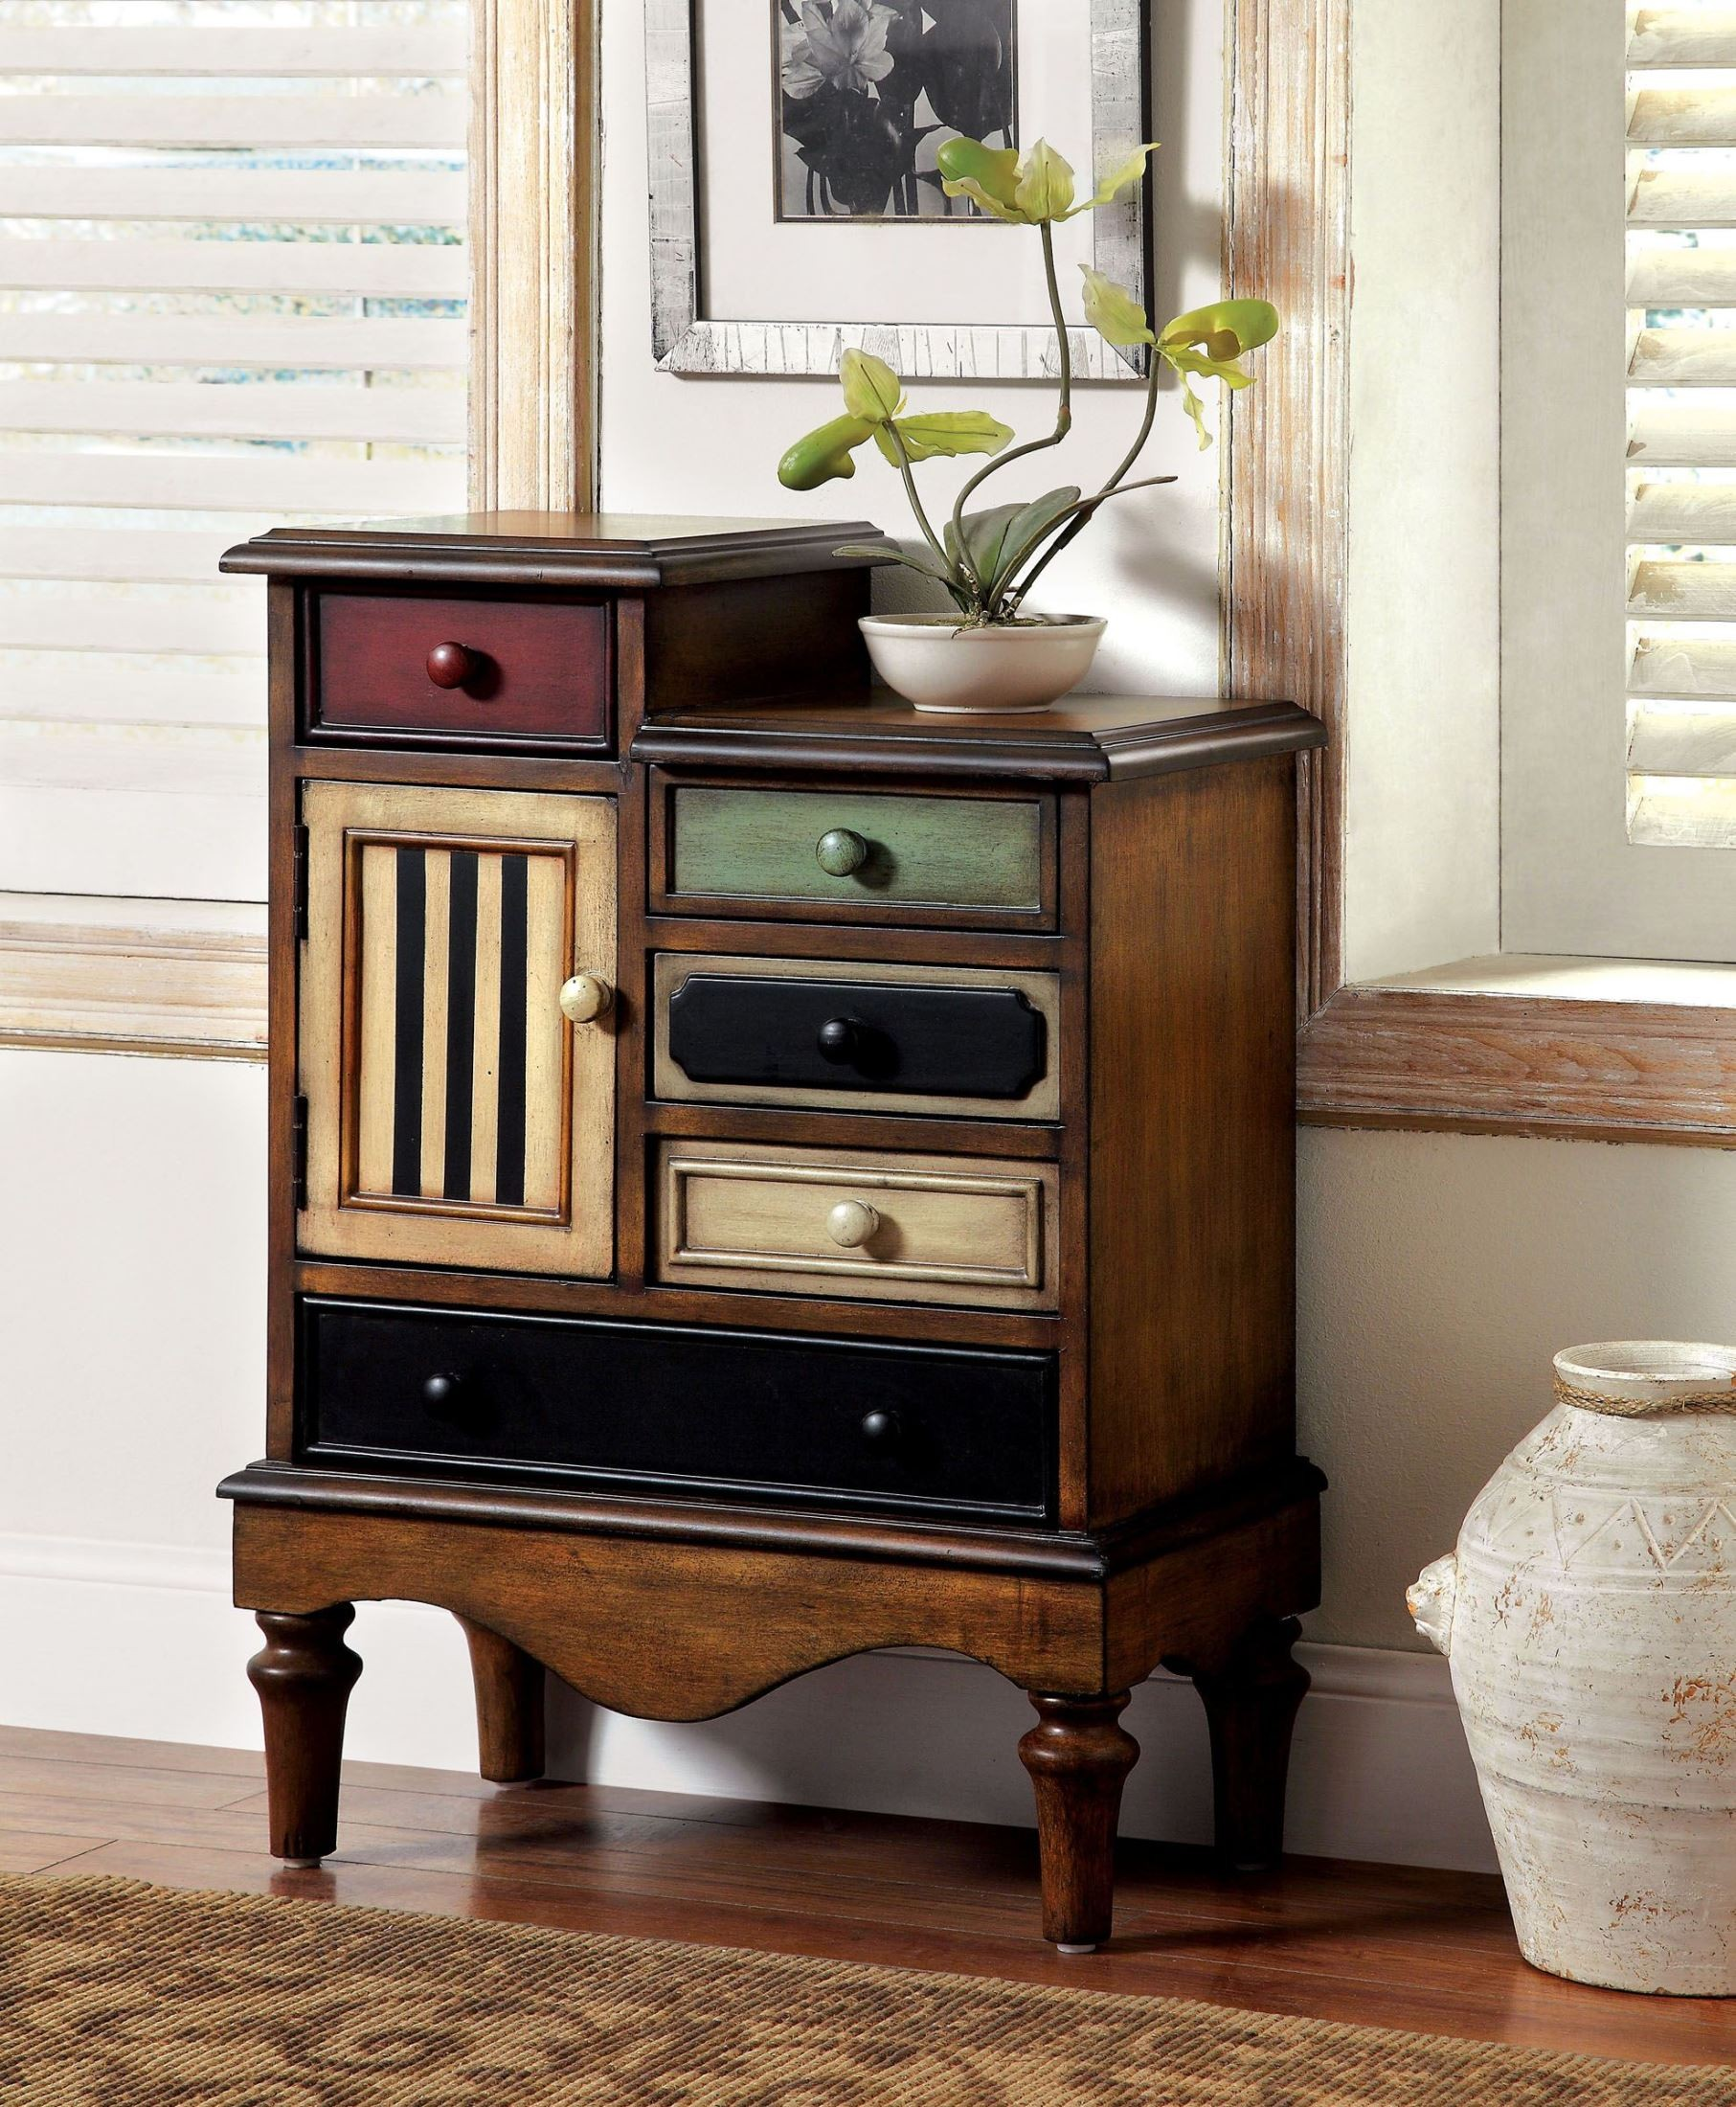 Neche multi color accent chest from furniture of america for Furniture of america furniture